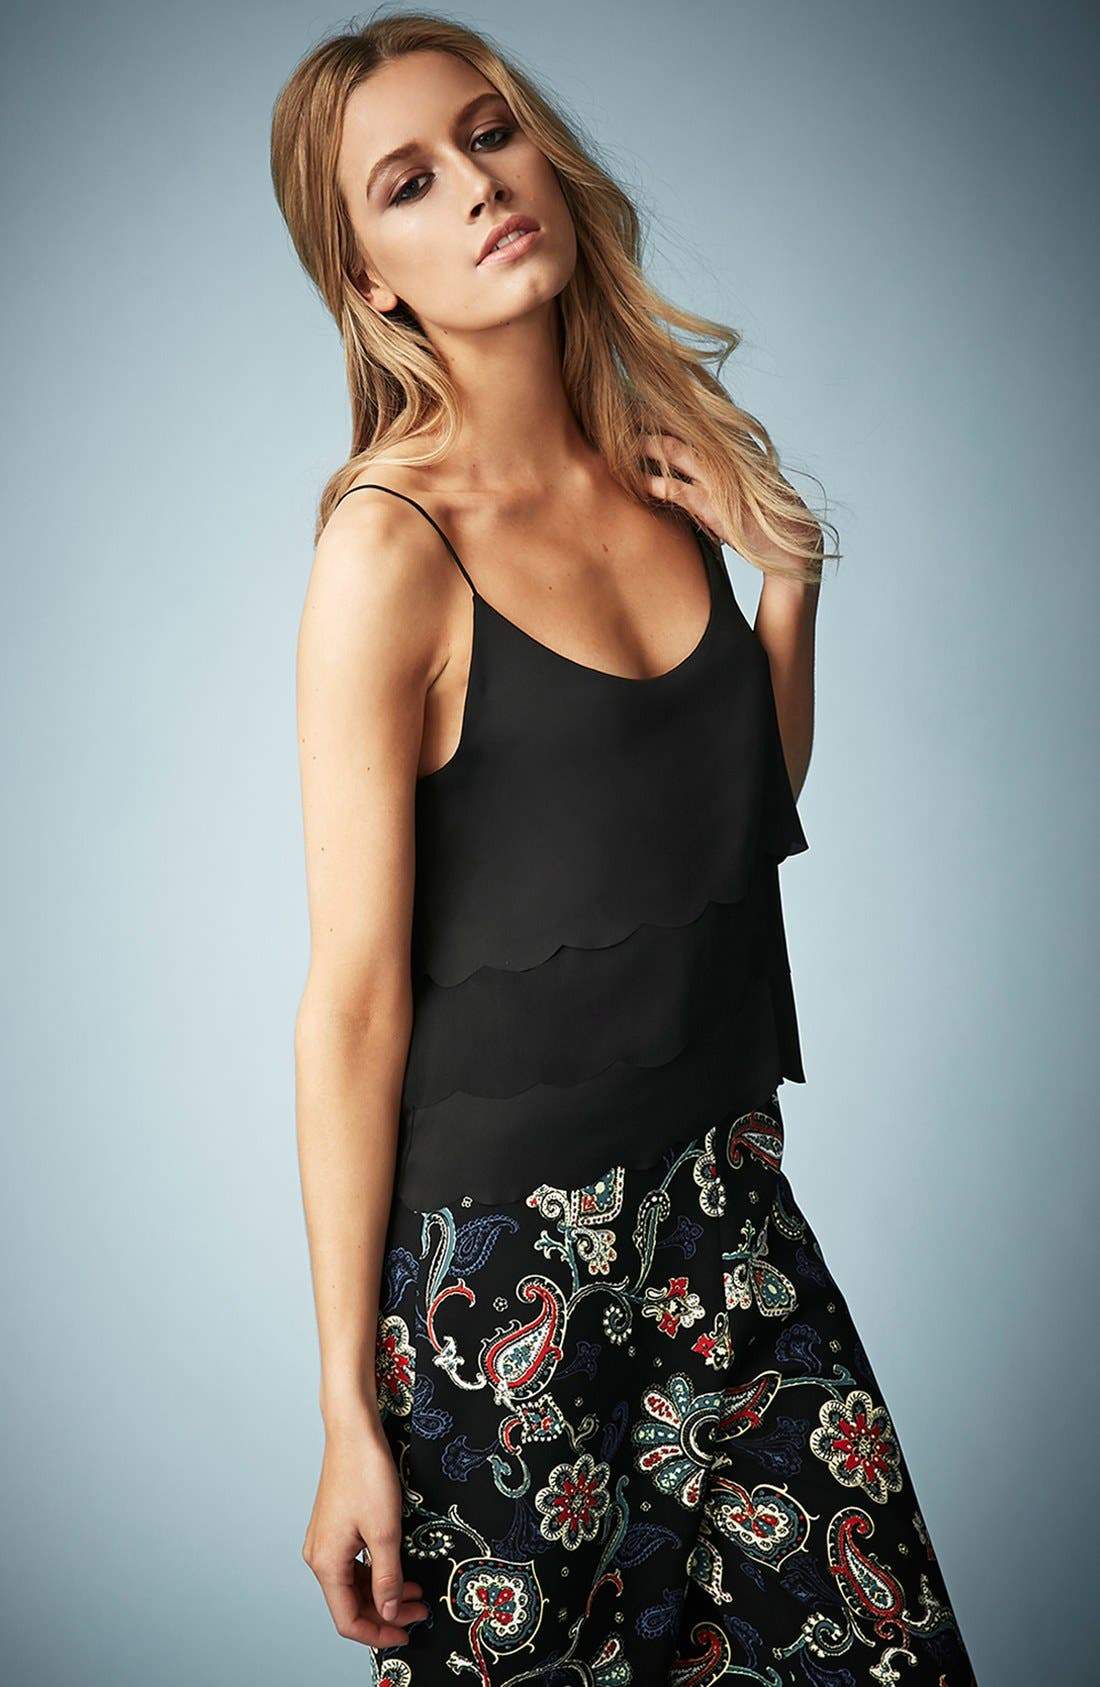 TOPSHOP Kate Moss for Topshop Scalloped Camisole, Main, color, 001